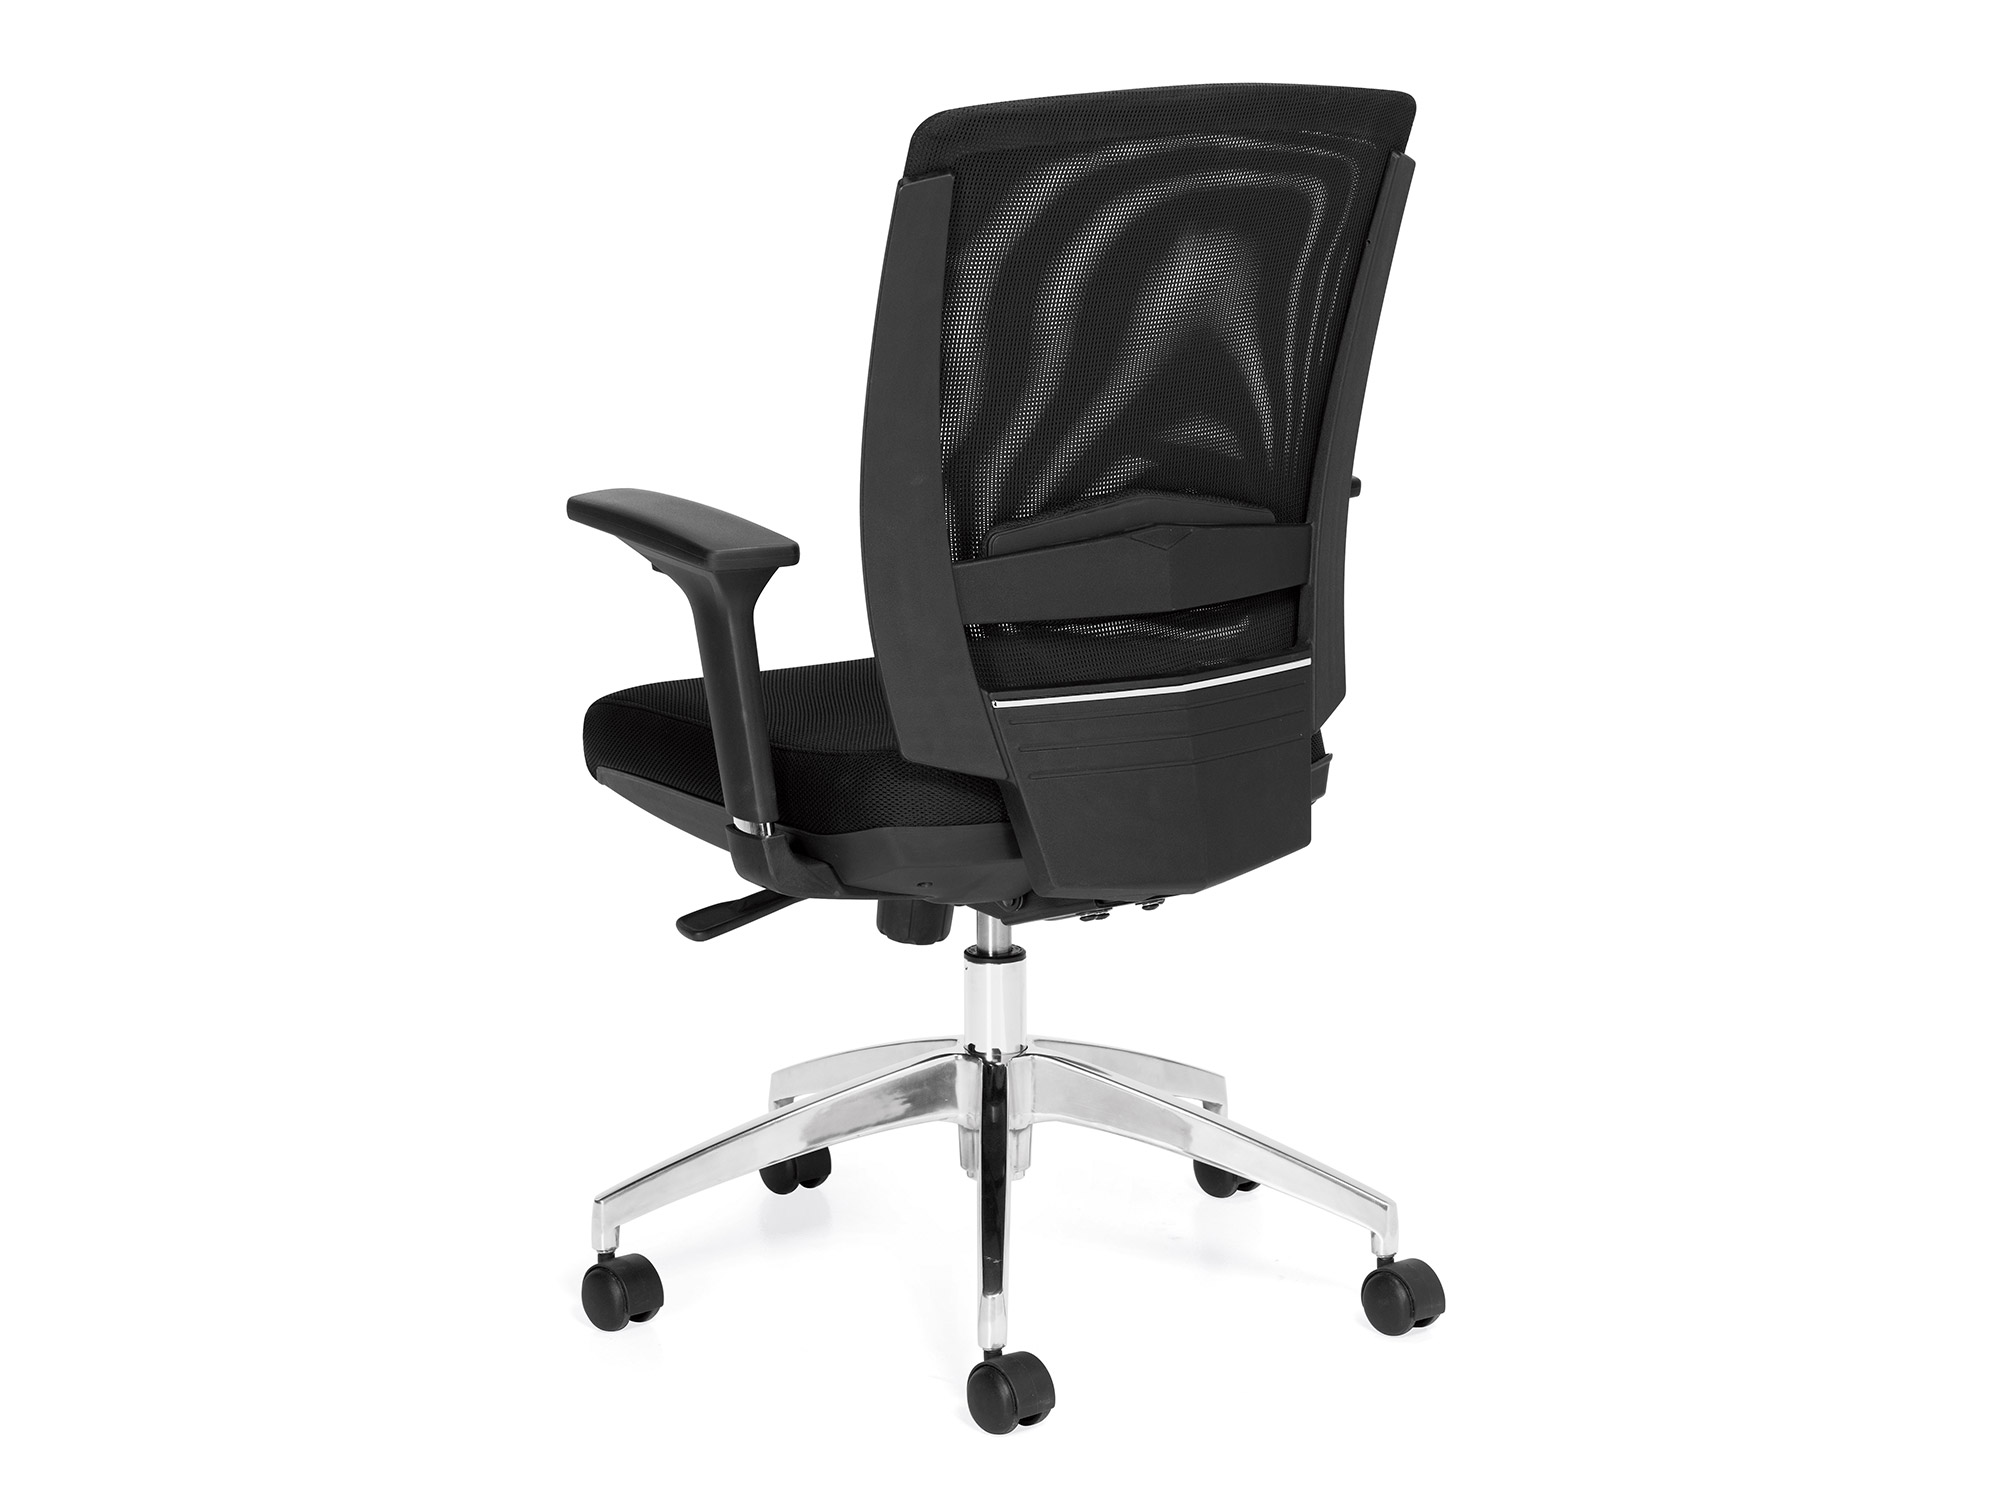 ergonomic chair angle sofa covers amazon workstation office task chairs for